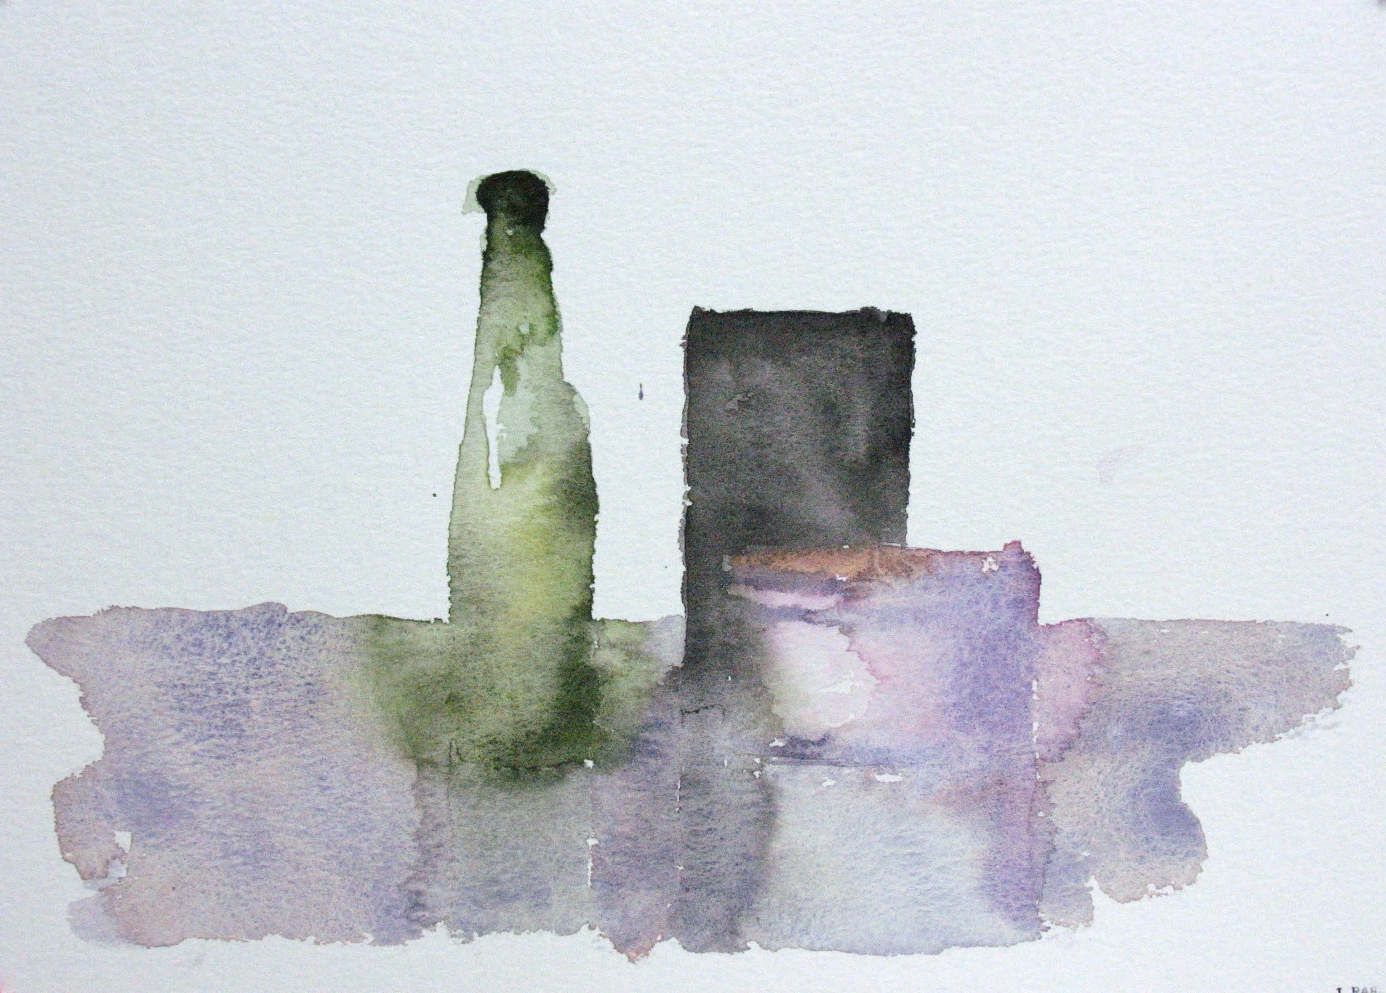 WCSL110, 2010, water colour on paper, 38 x 29cm.